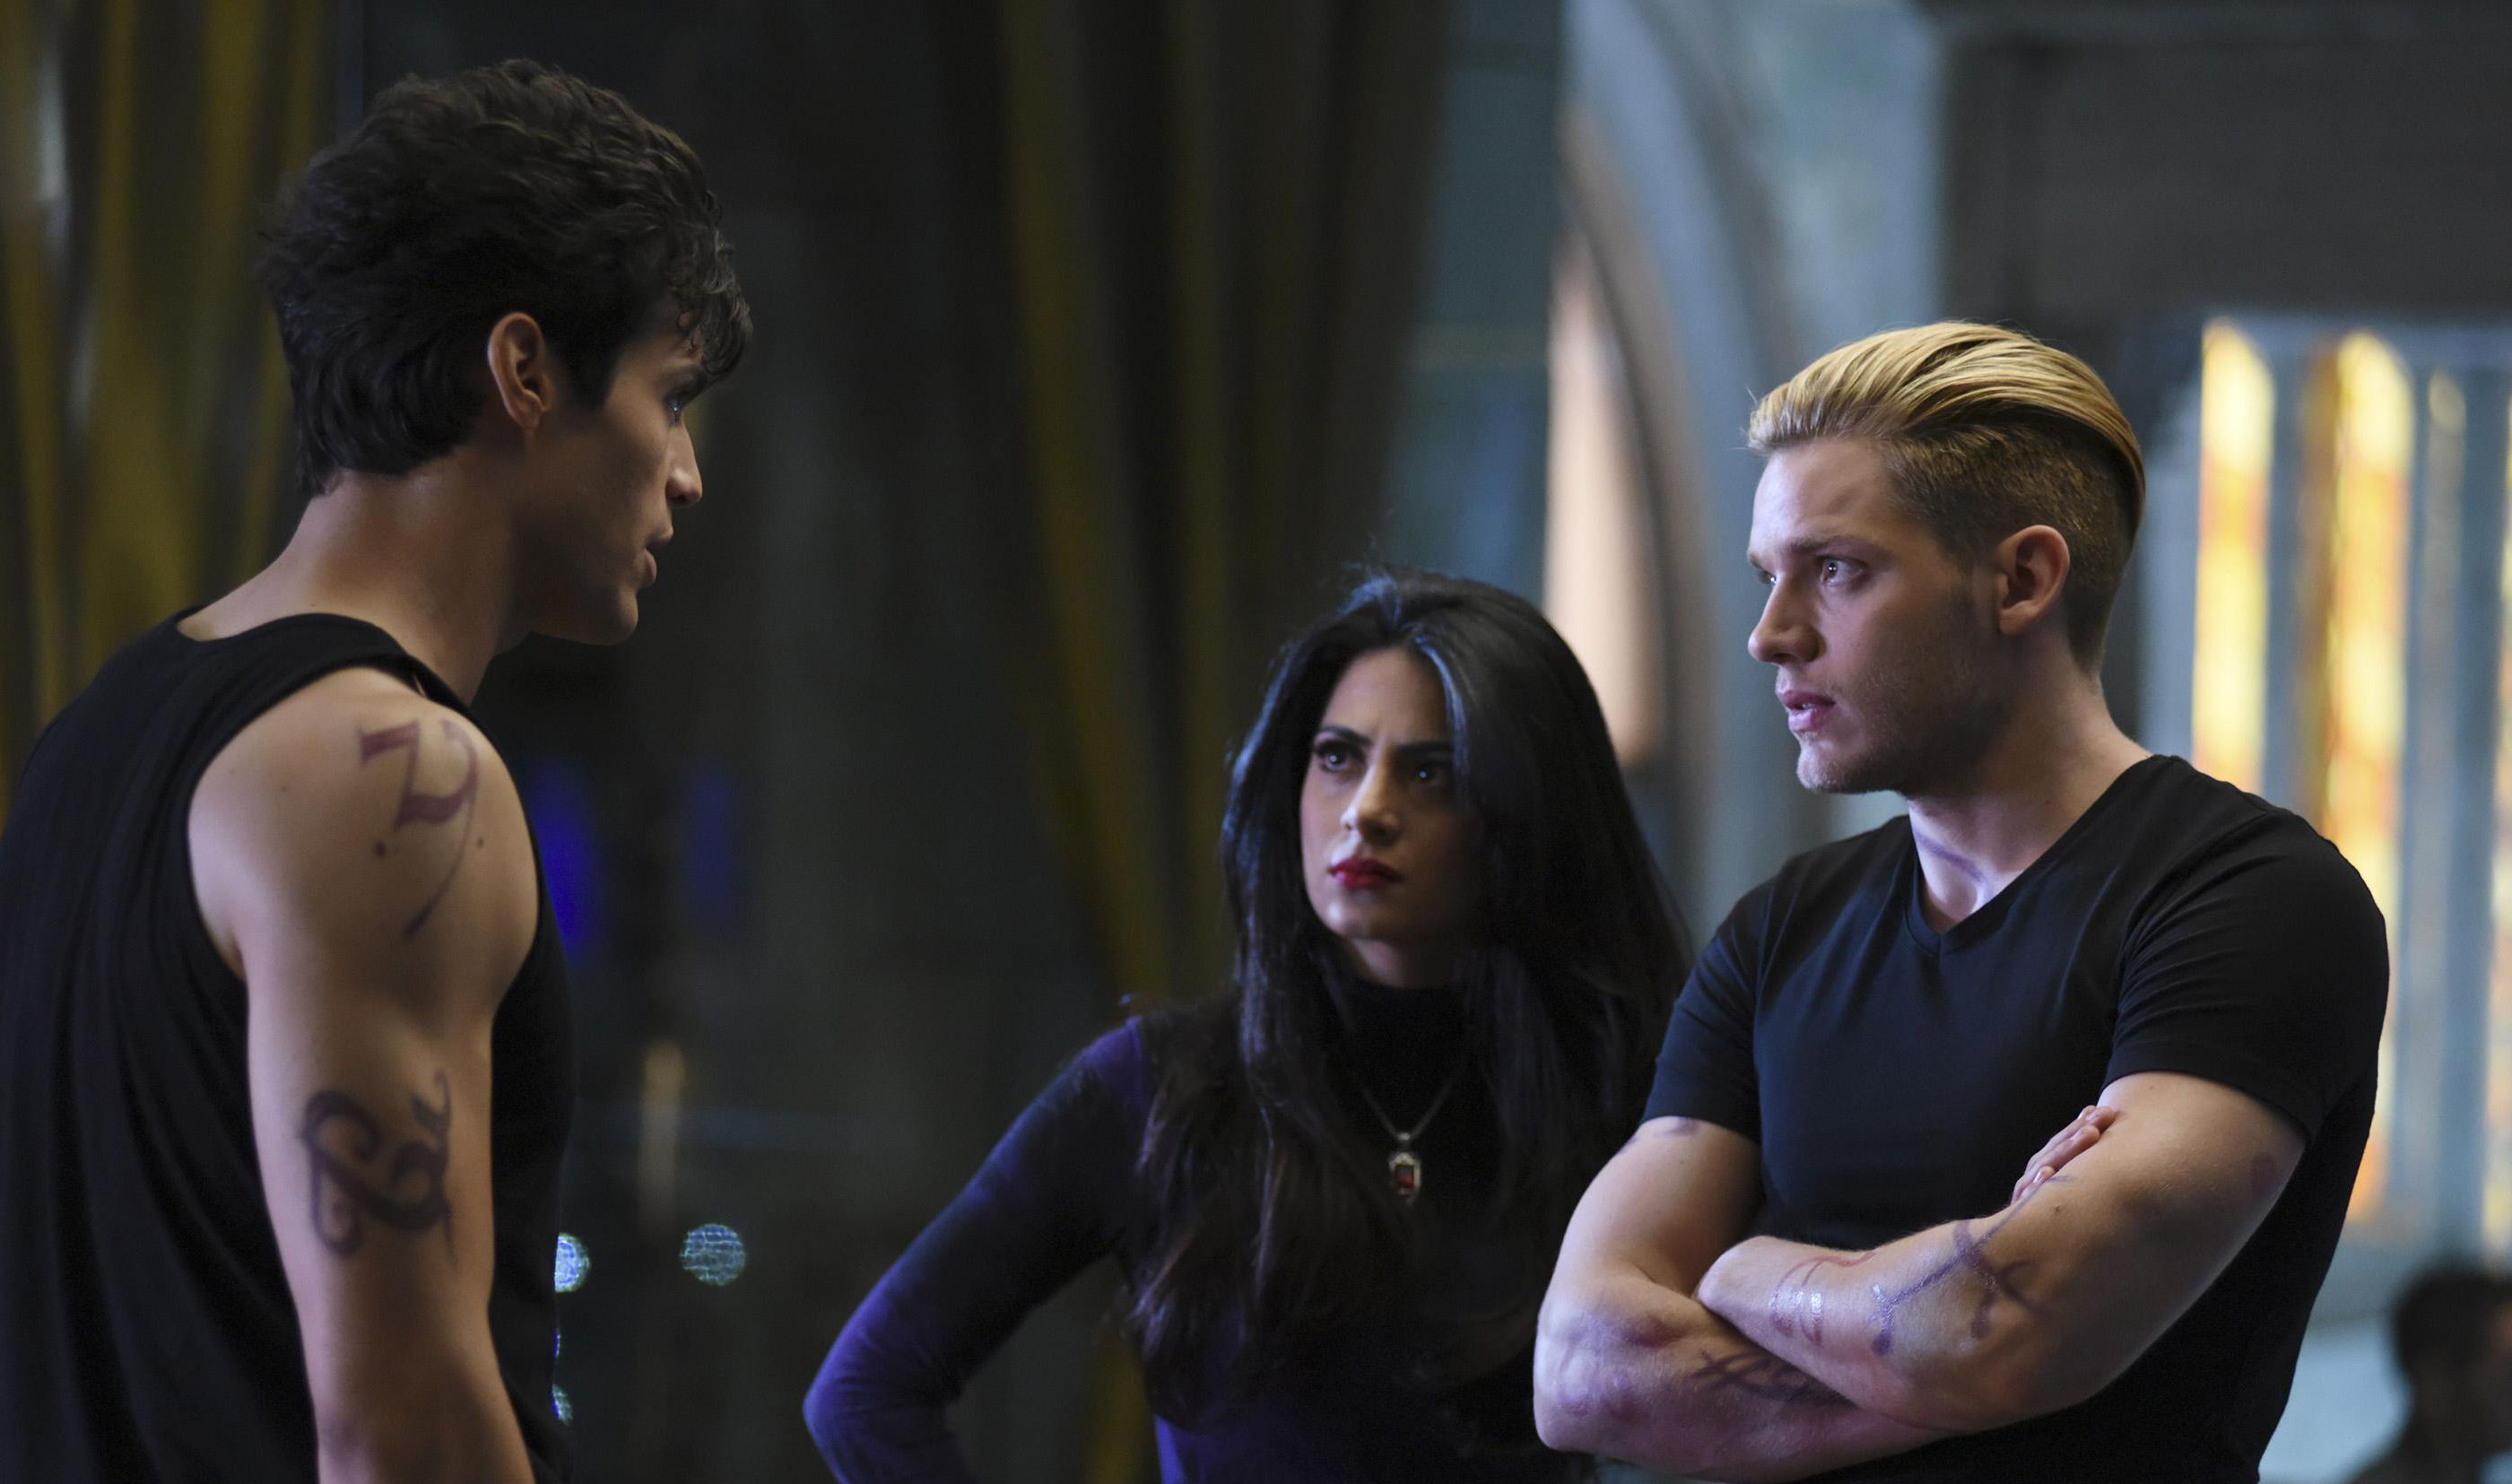 shadowhunters-episode-9-still-01